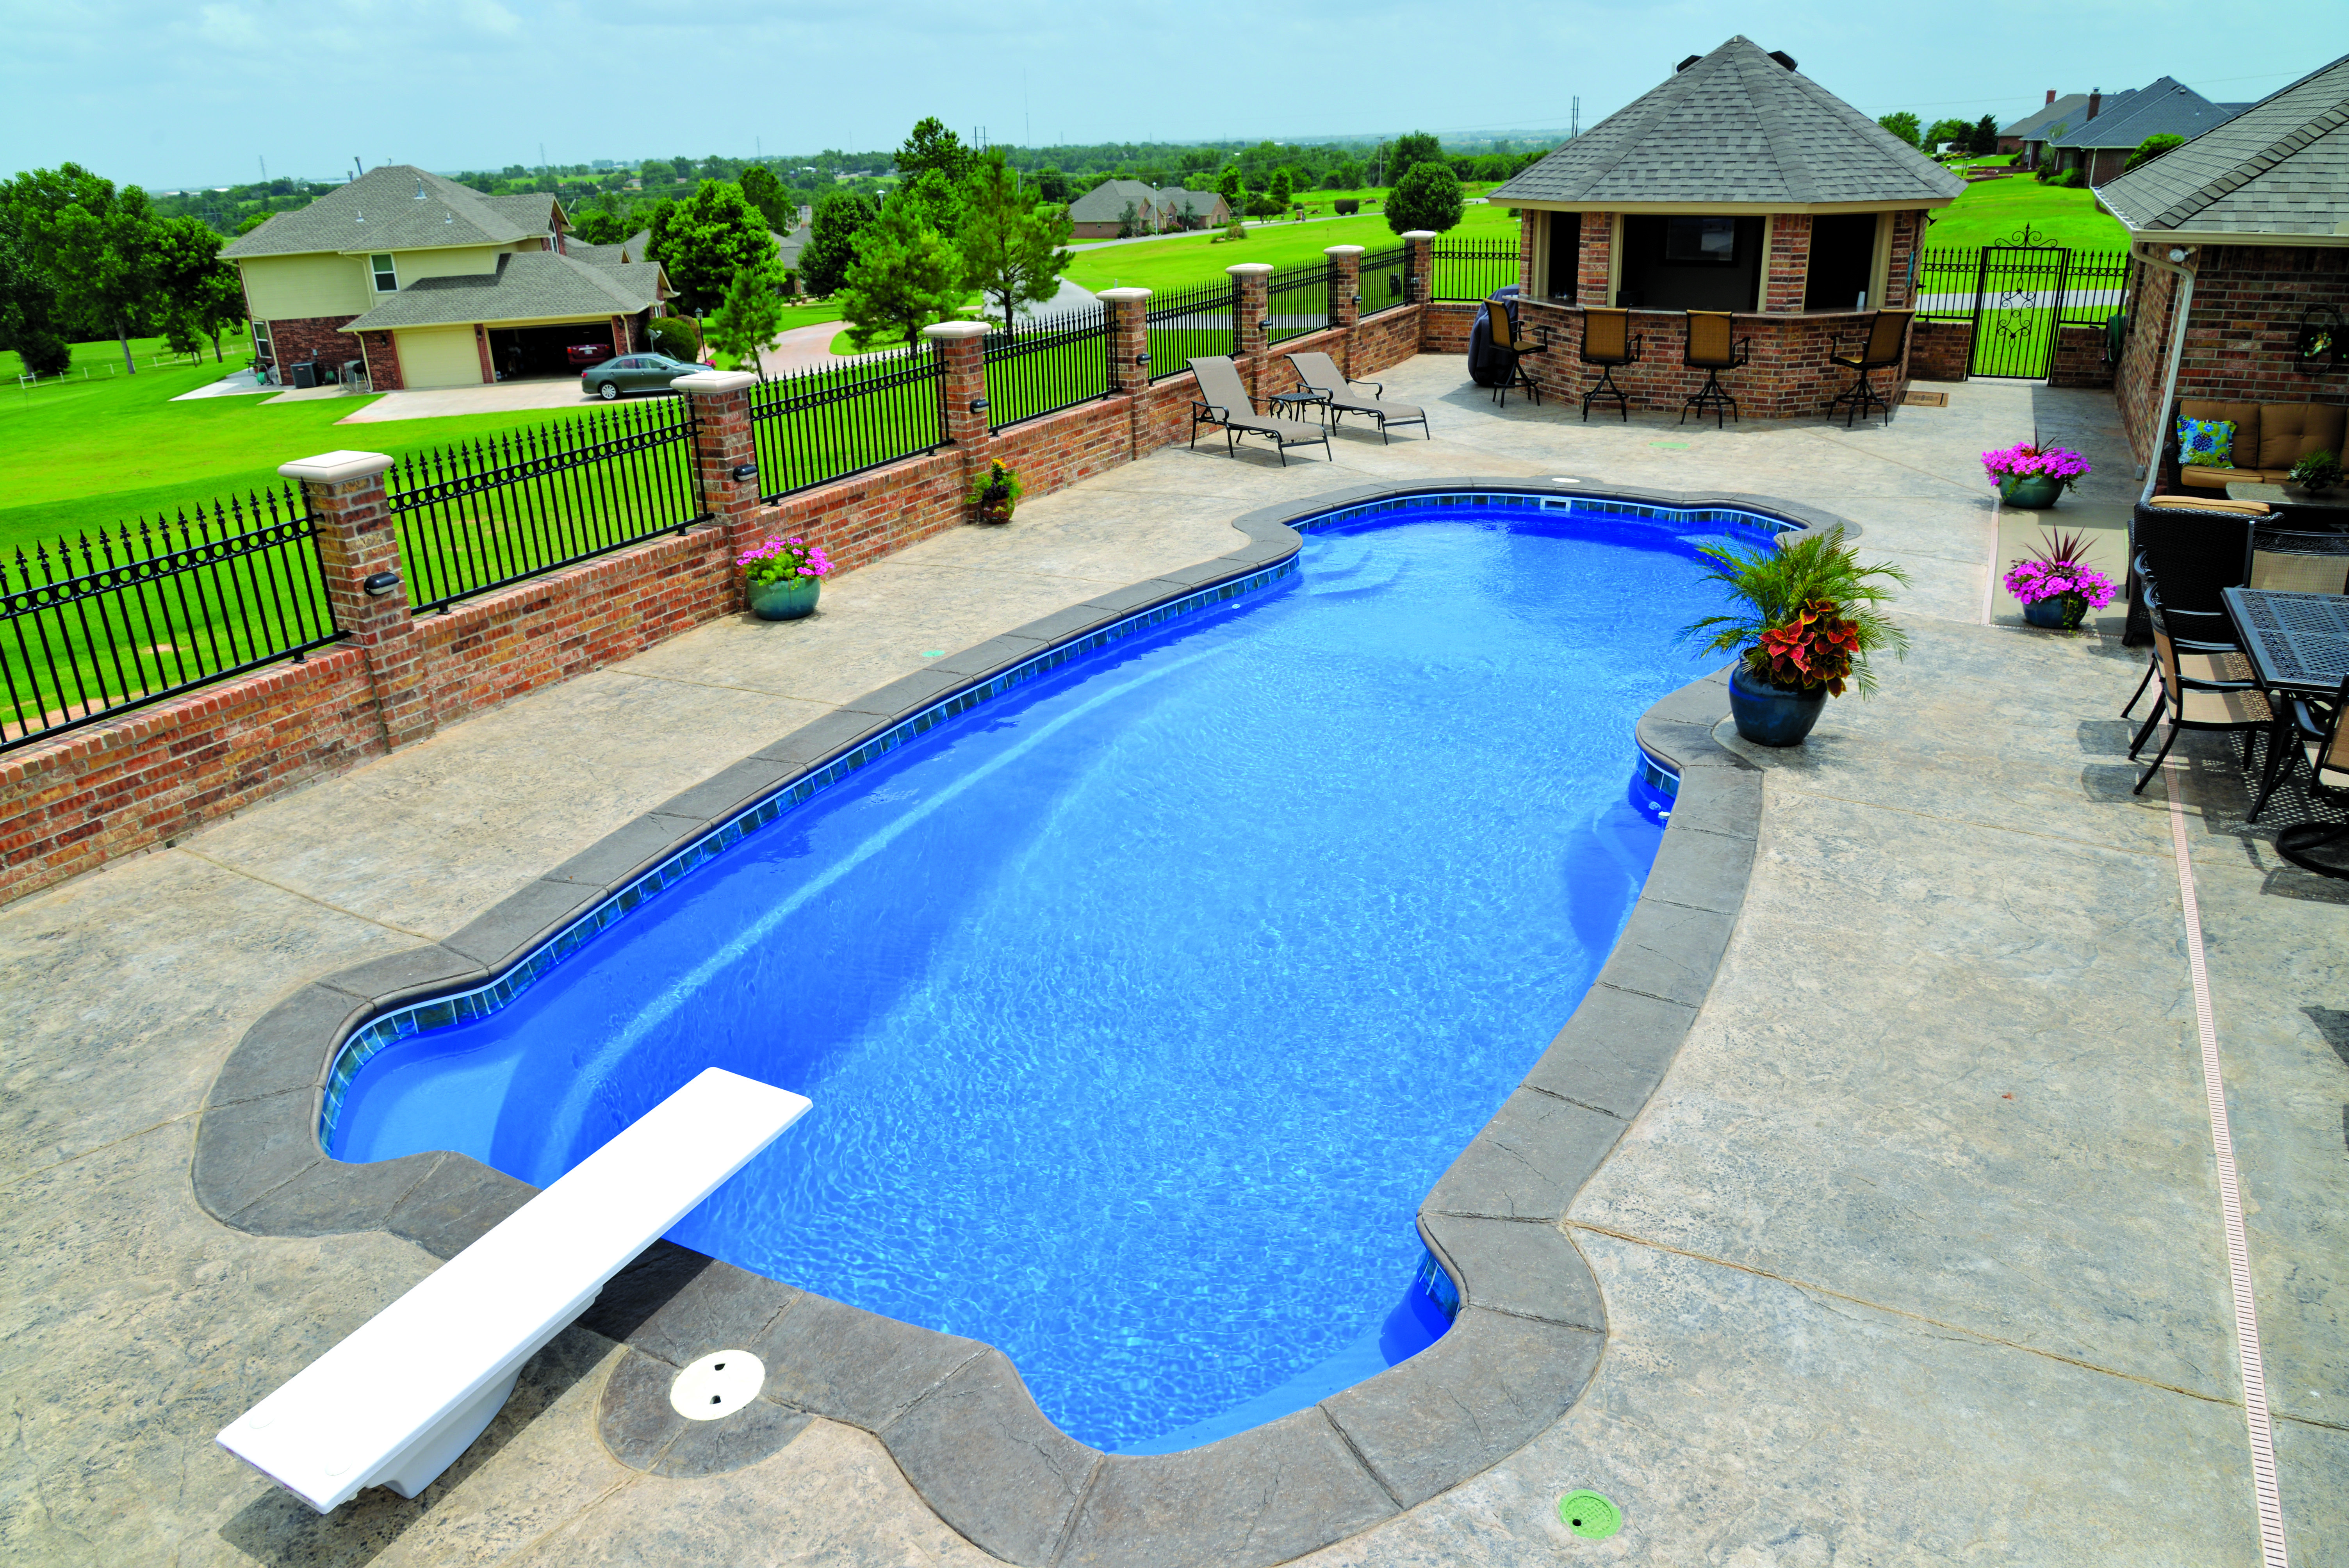 Pools4ever Is A Family Owned Fiberglass Swimming Pool Sales And Installation Company Serving North Fiberglass Swimming Pools Pool Swimming Pool Sales